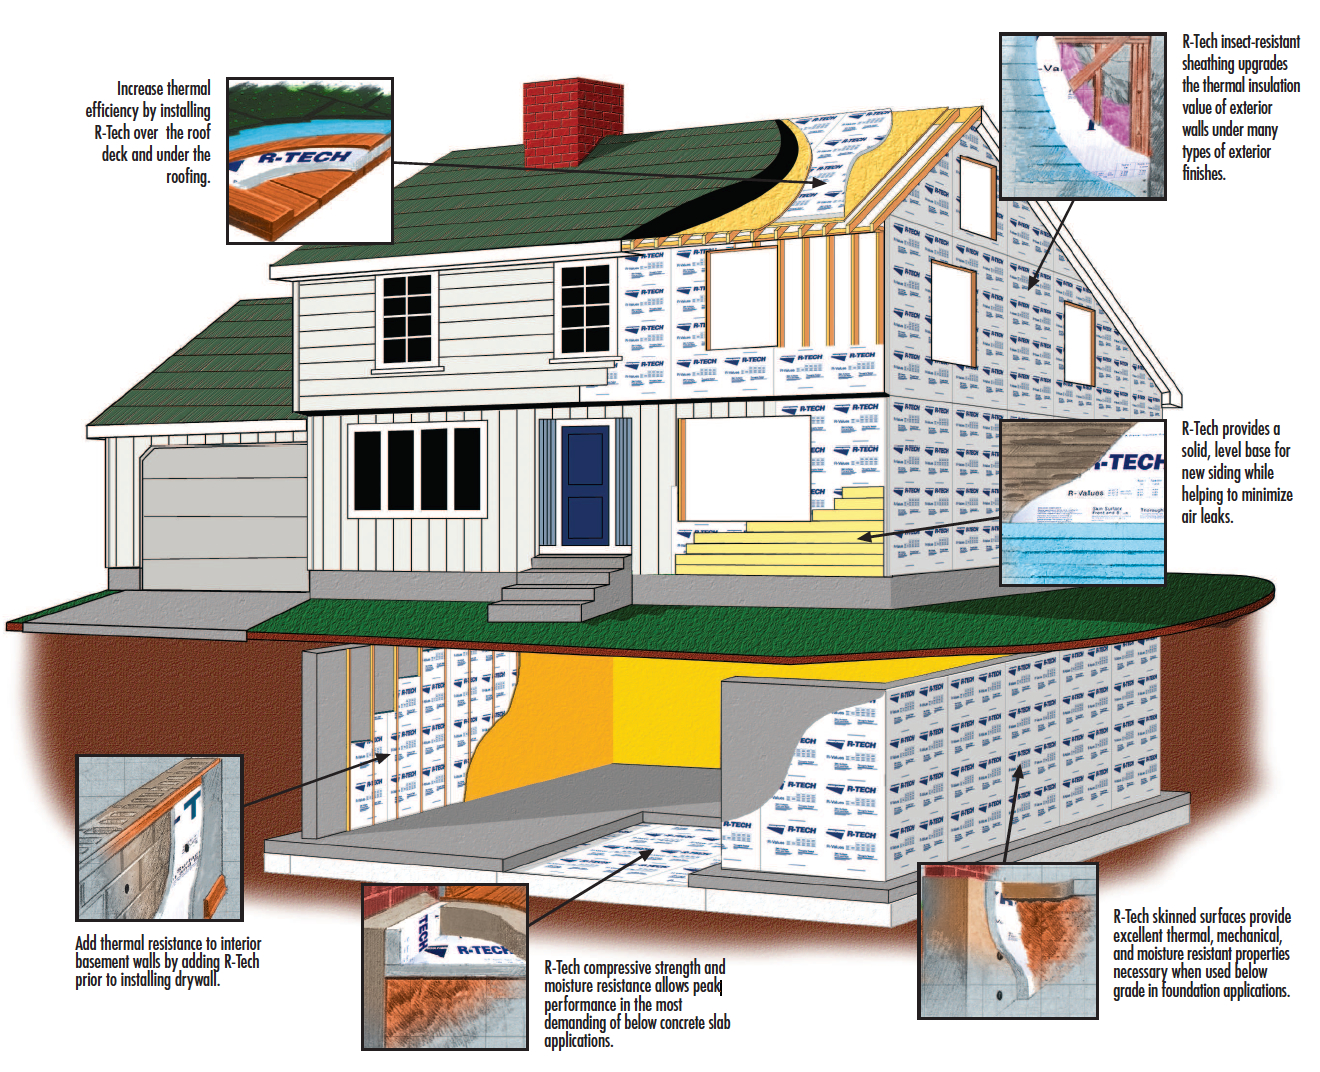 How to make a house with your hands to insulate a house outside with foam plastic, reviews